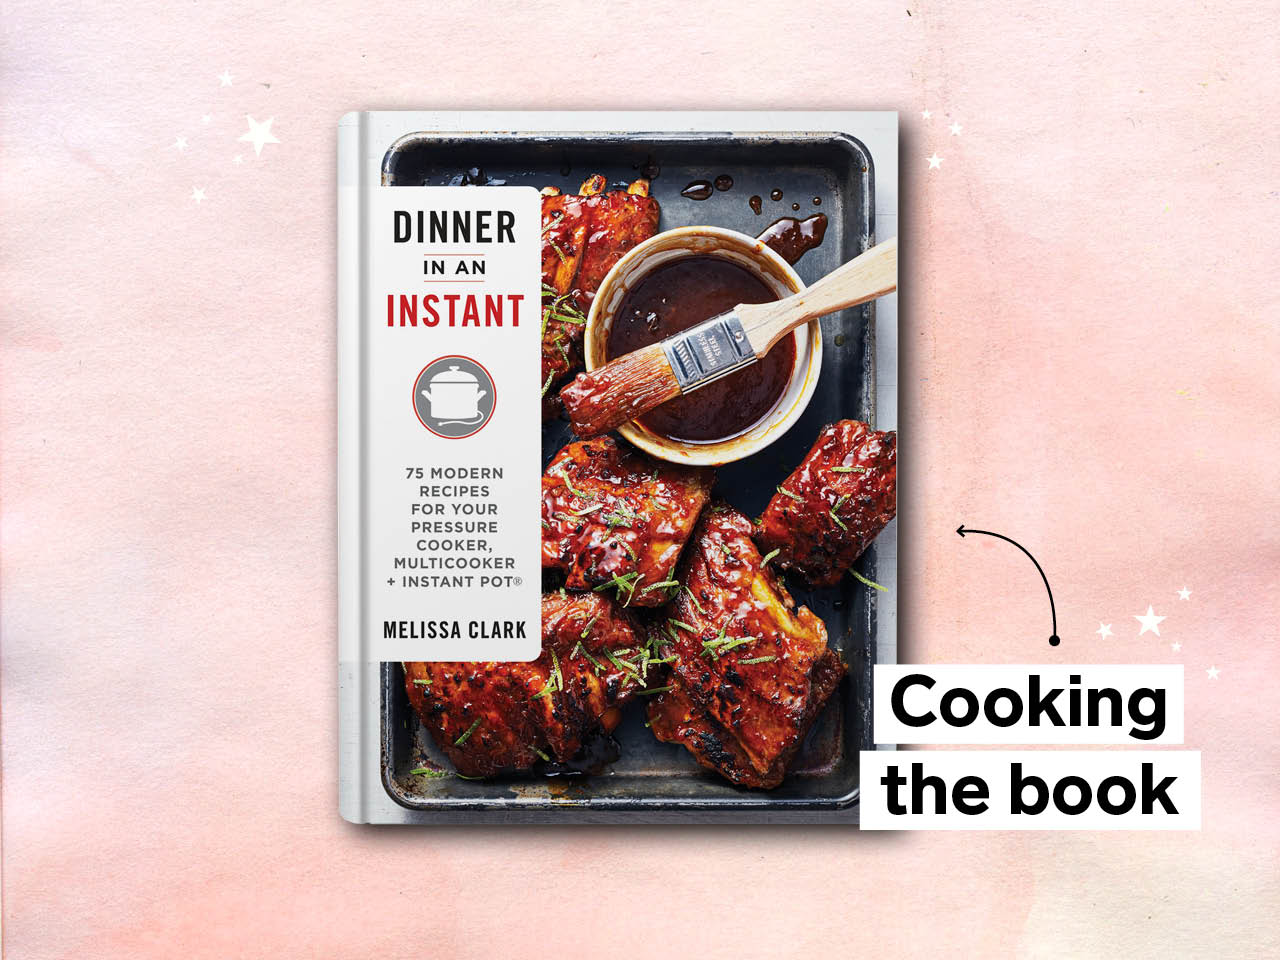 The Instant Pot And Slow Cooker Cookbook Our Food Director Can't Stop Talking About